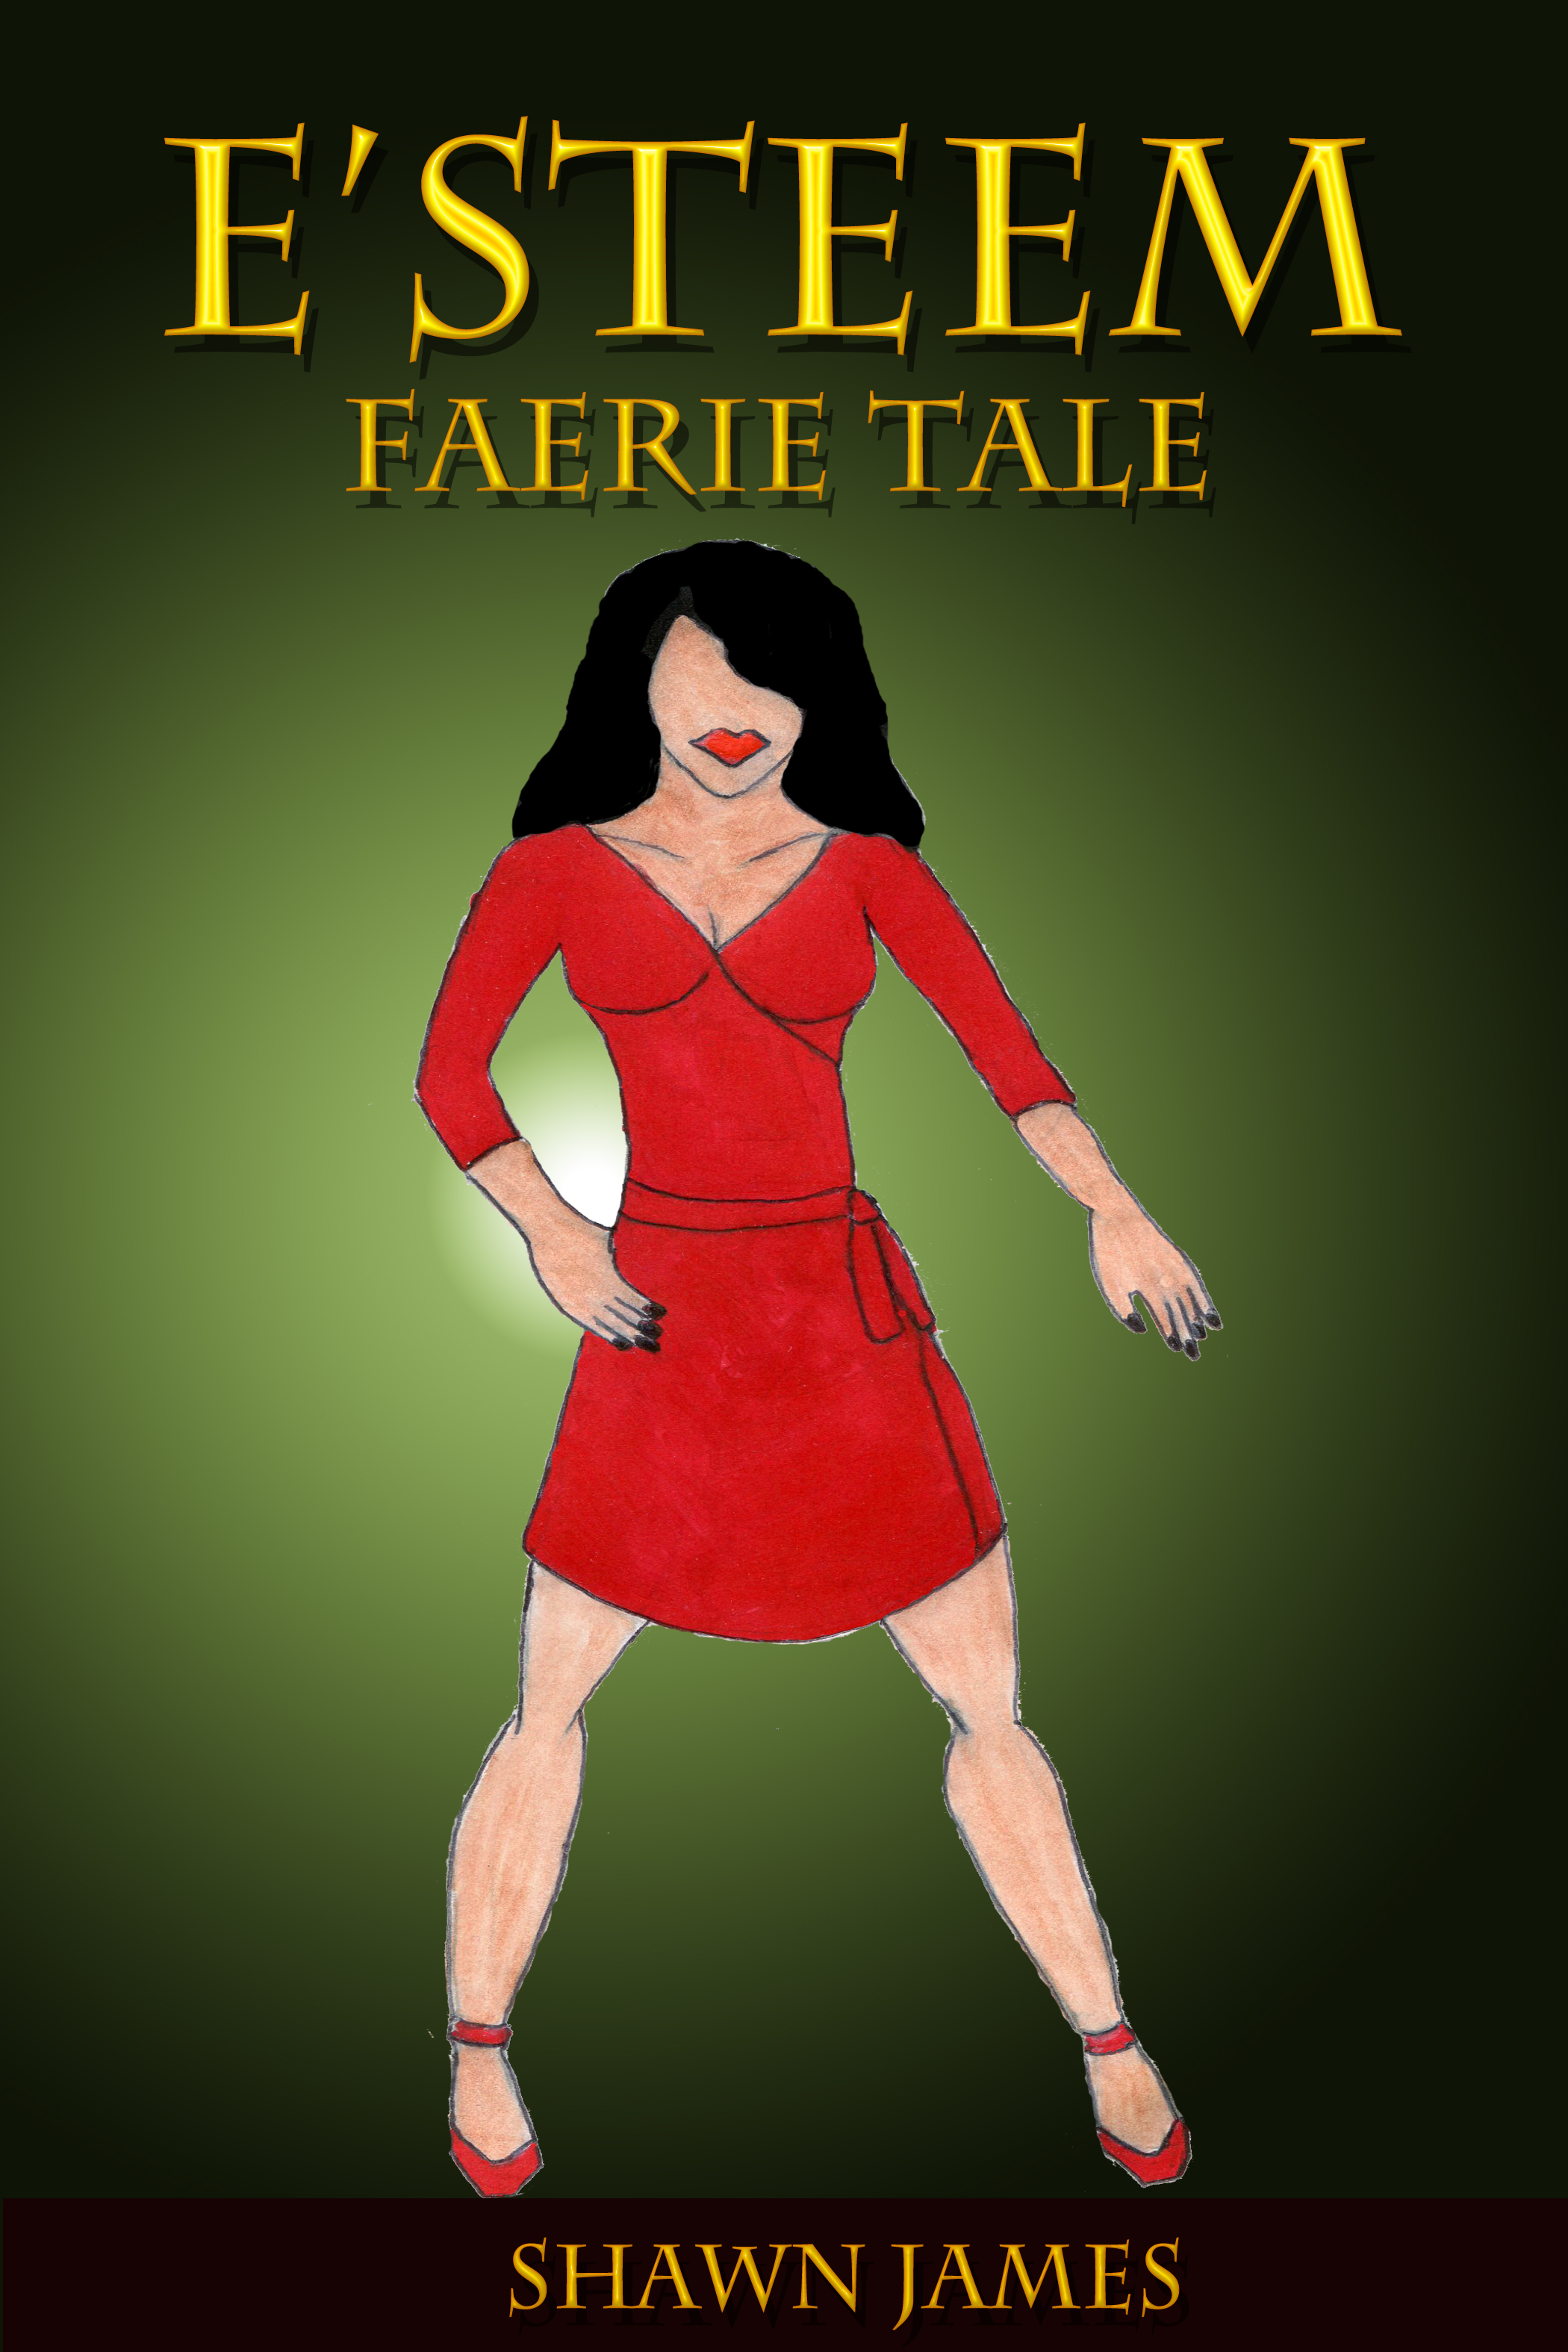 Smashwords - E'steem: Faerie Tale - a book by Shawn James